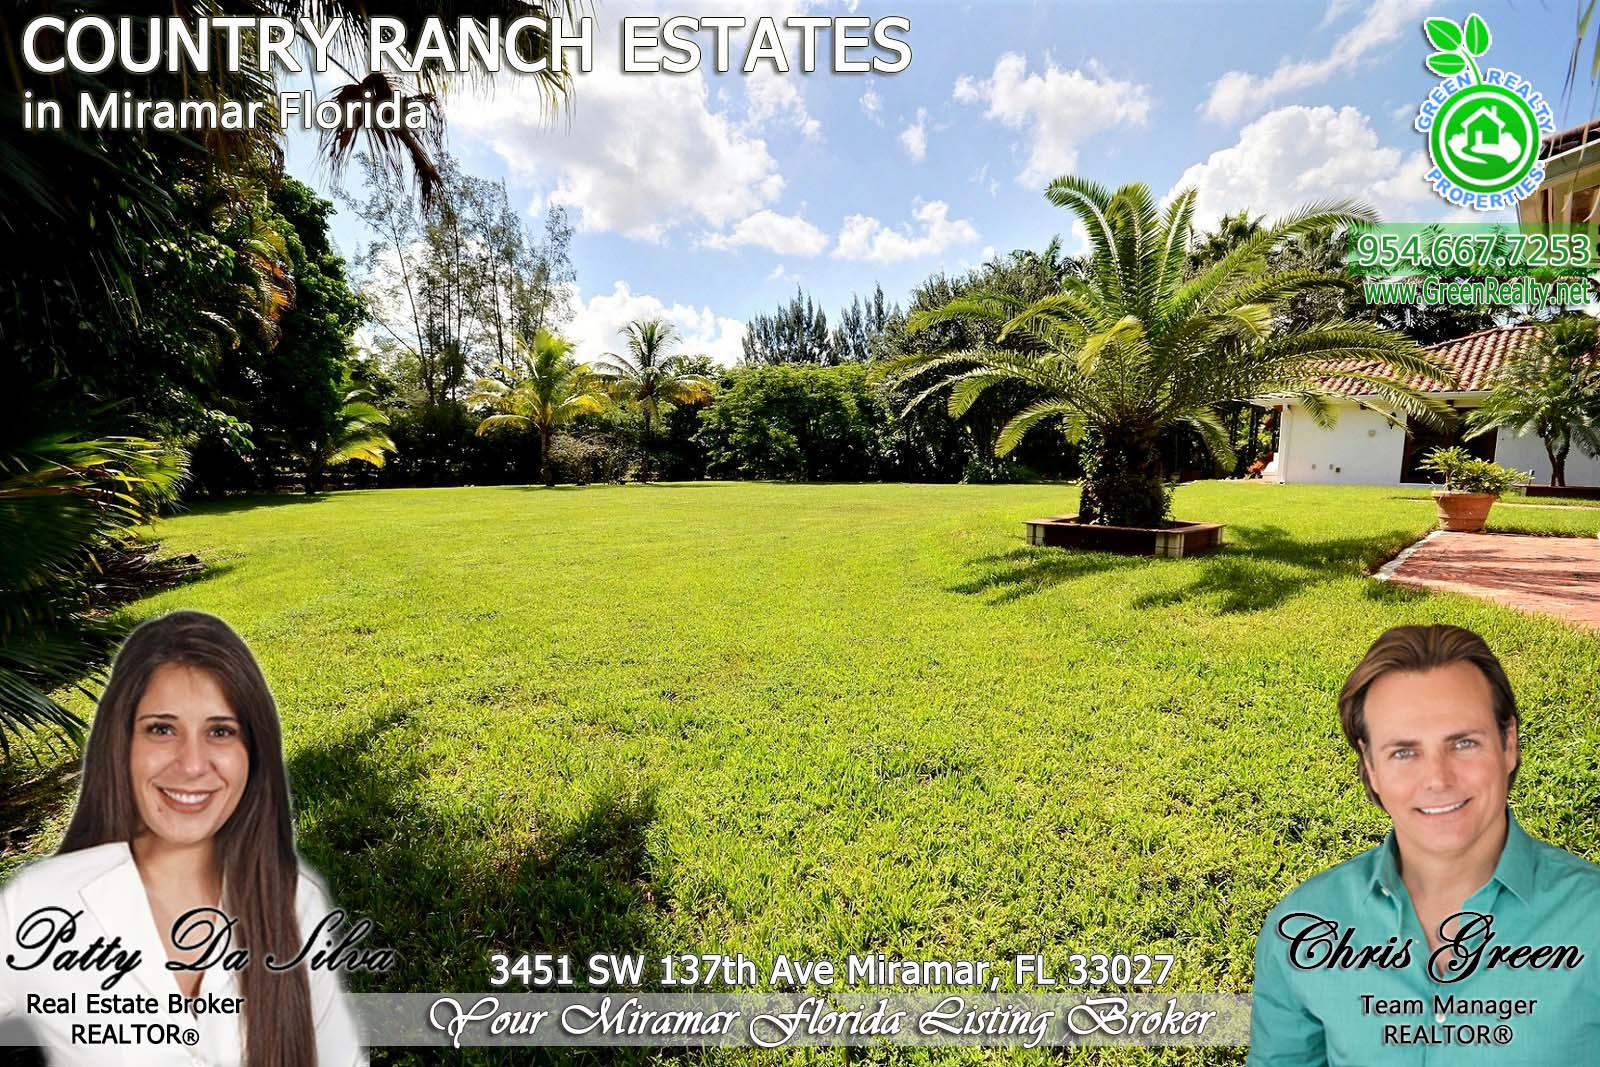 56 Country Ranch Estates Miramar FL